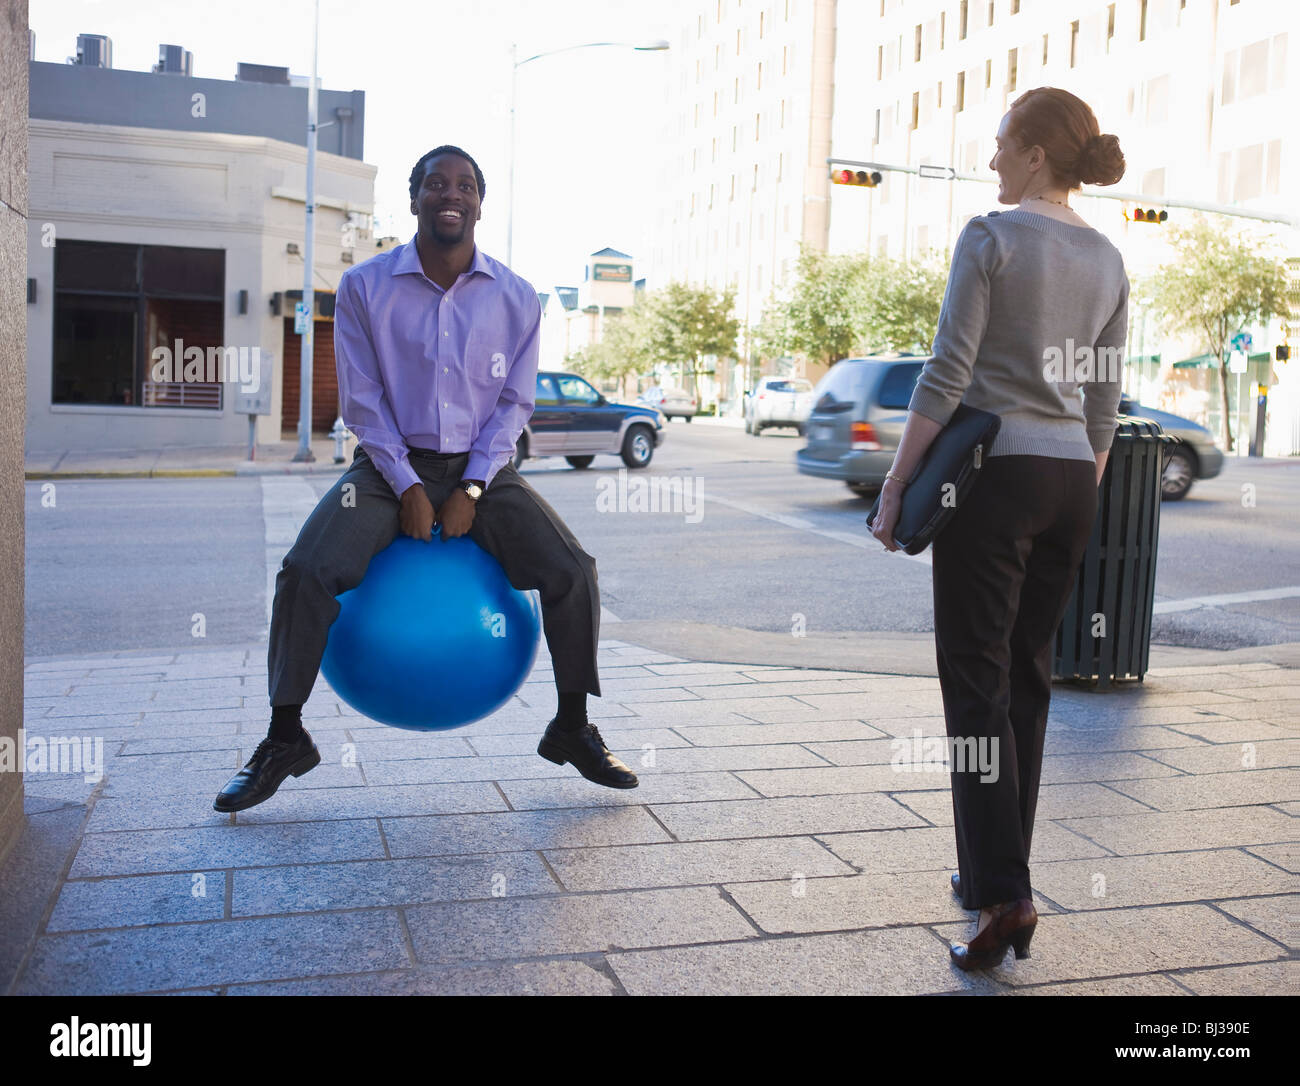 Businessman on blue ball dans Street Photo Stock